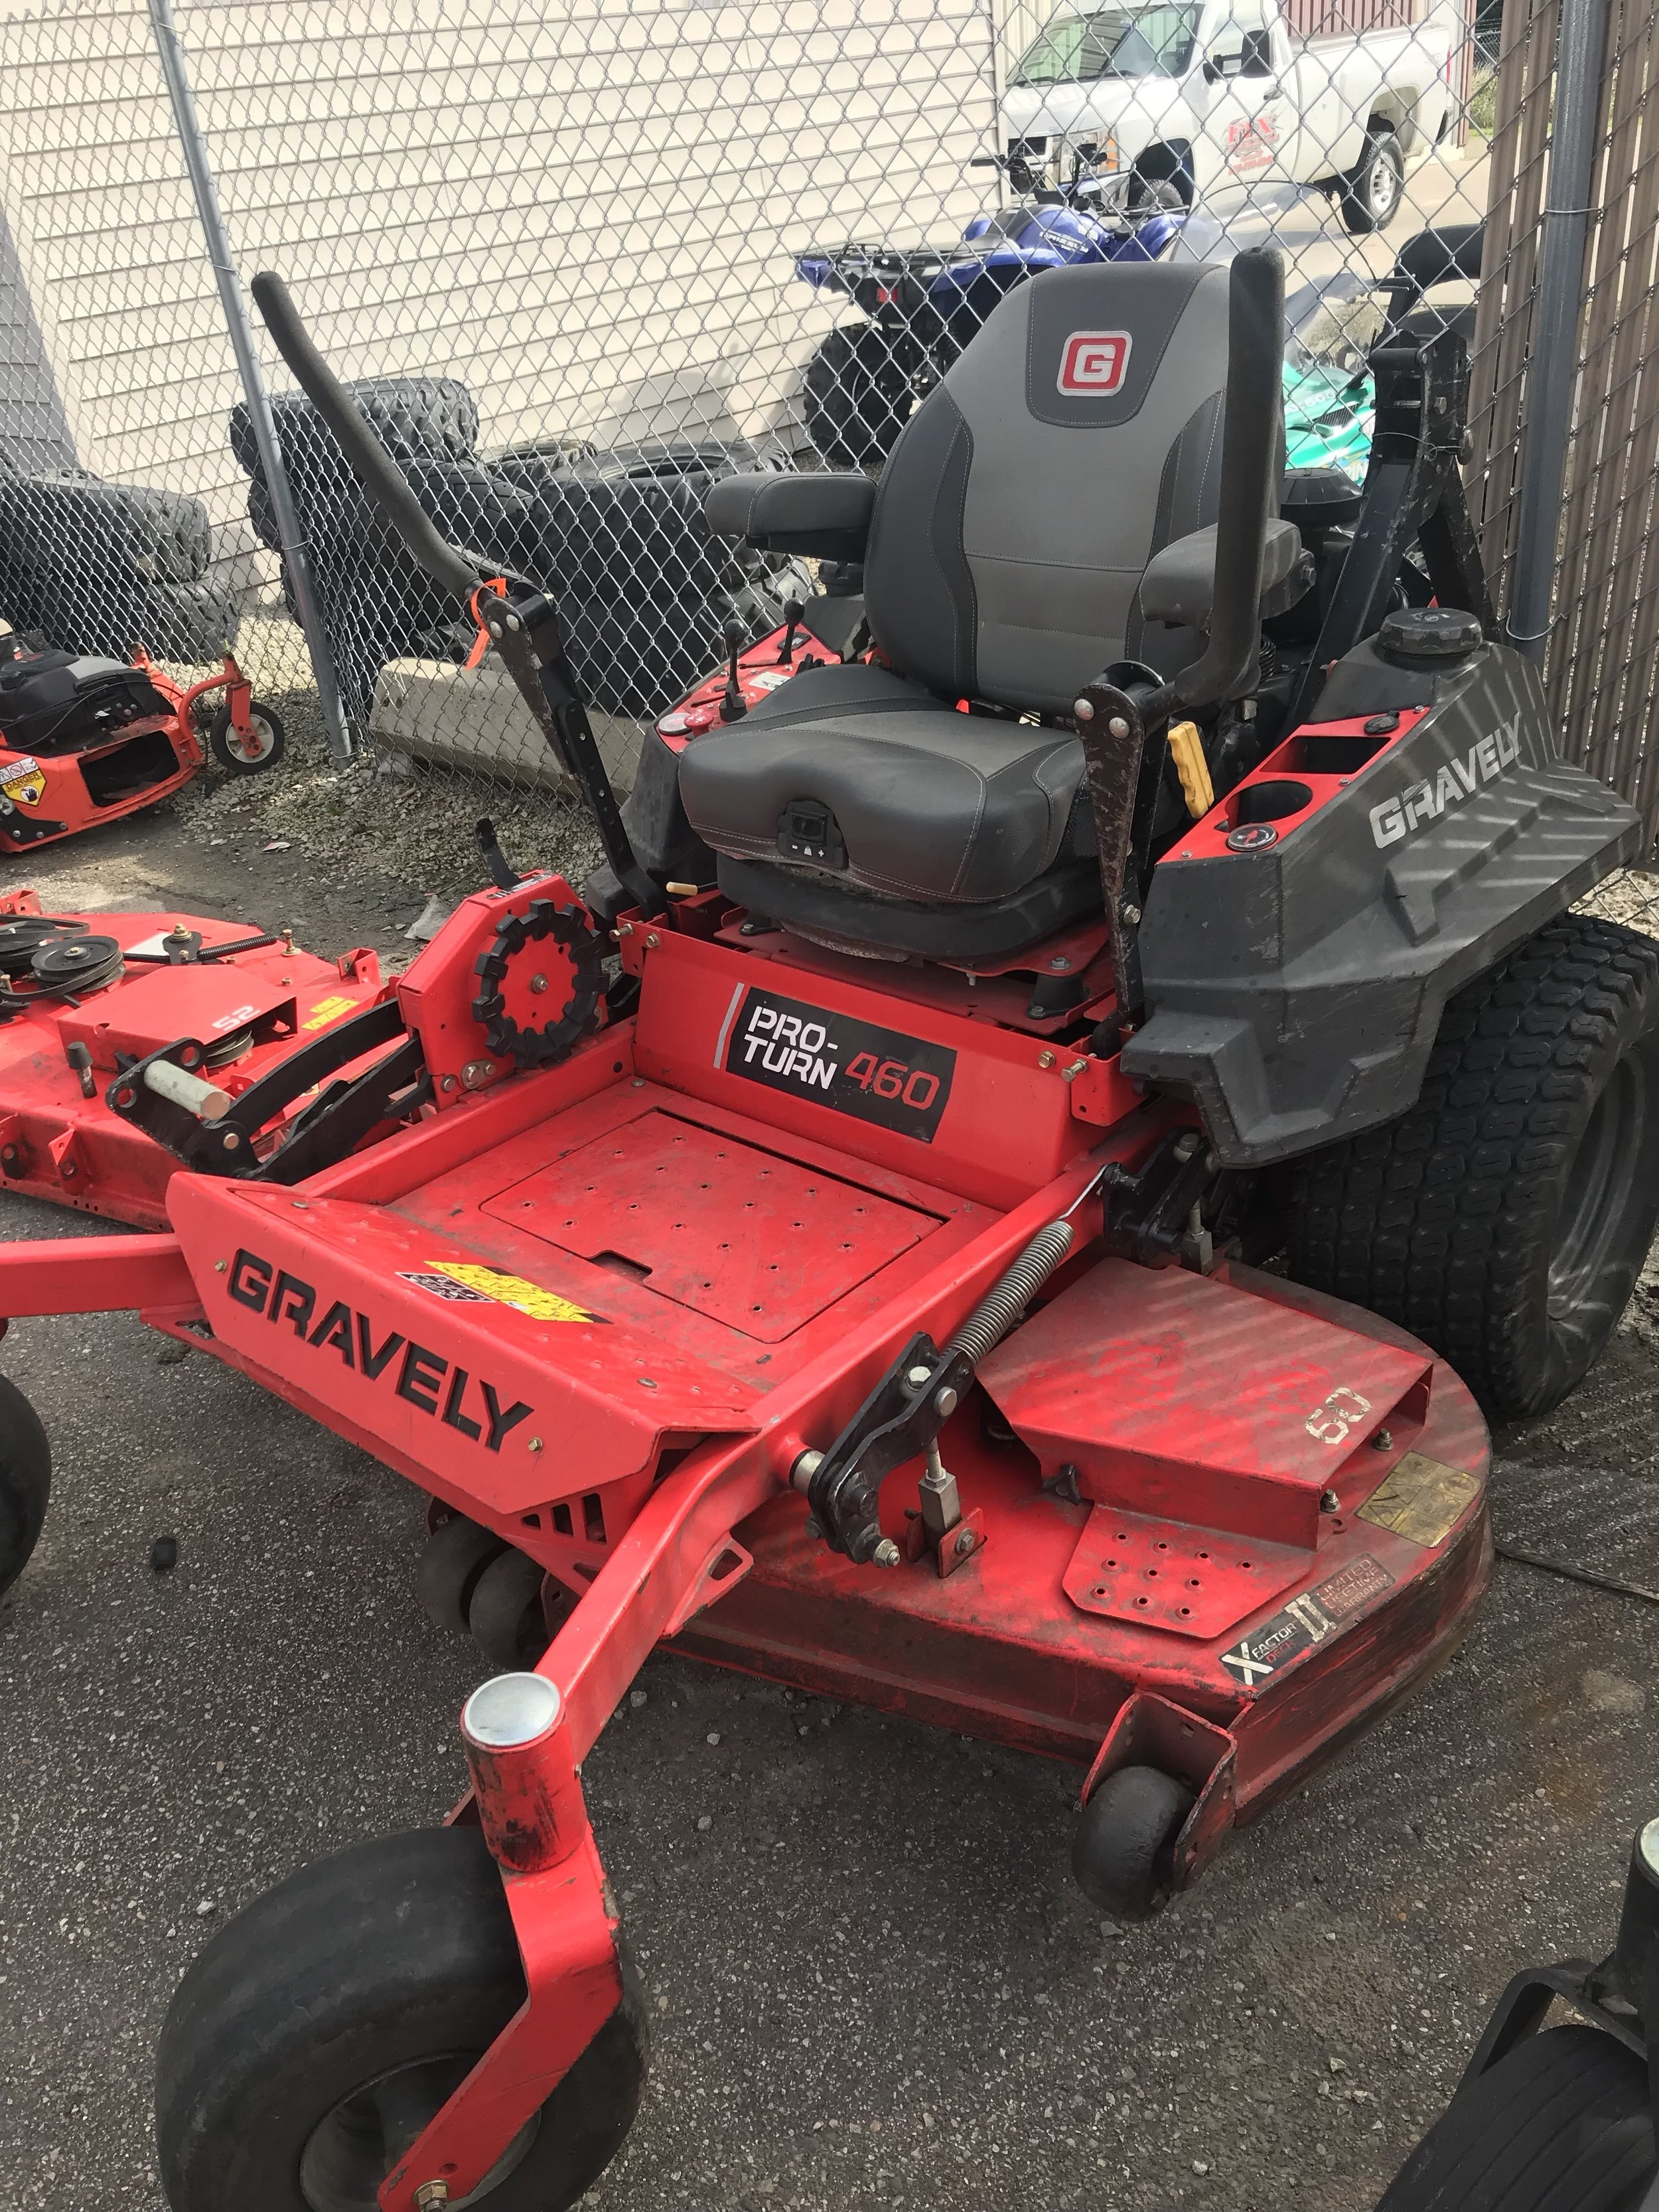 Used Snow Blowers Gravely Proturn 460